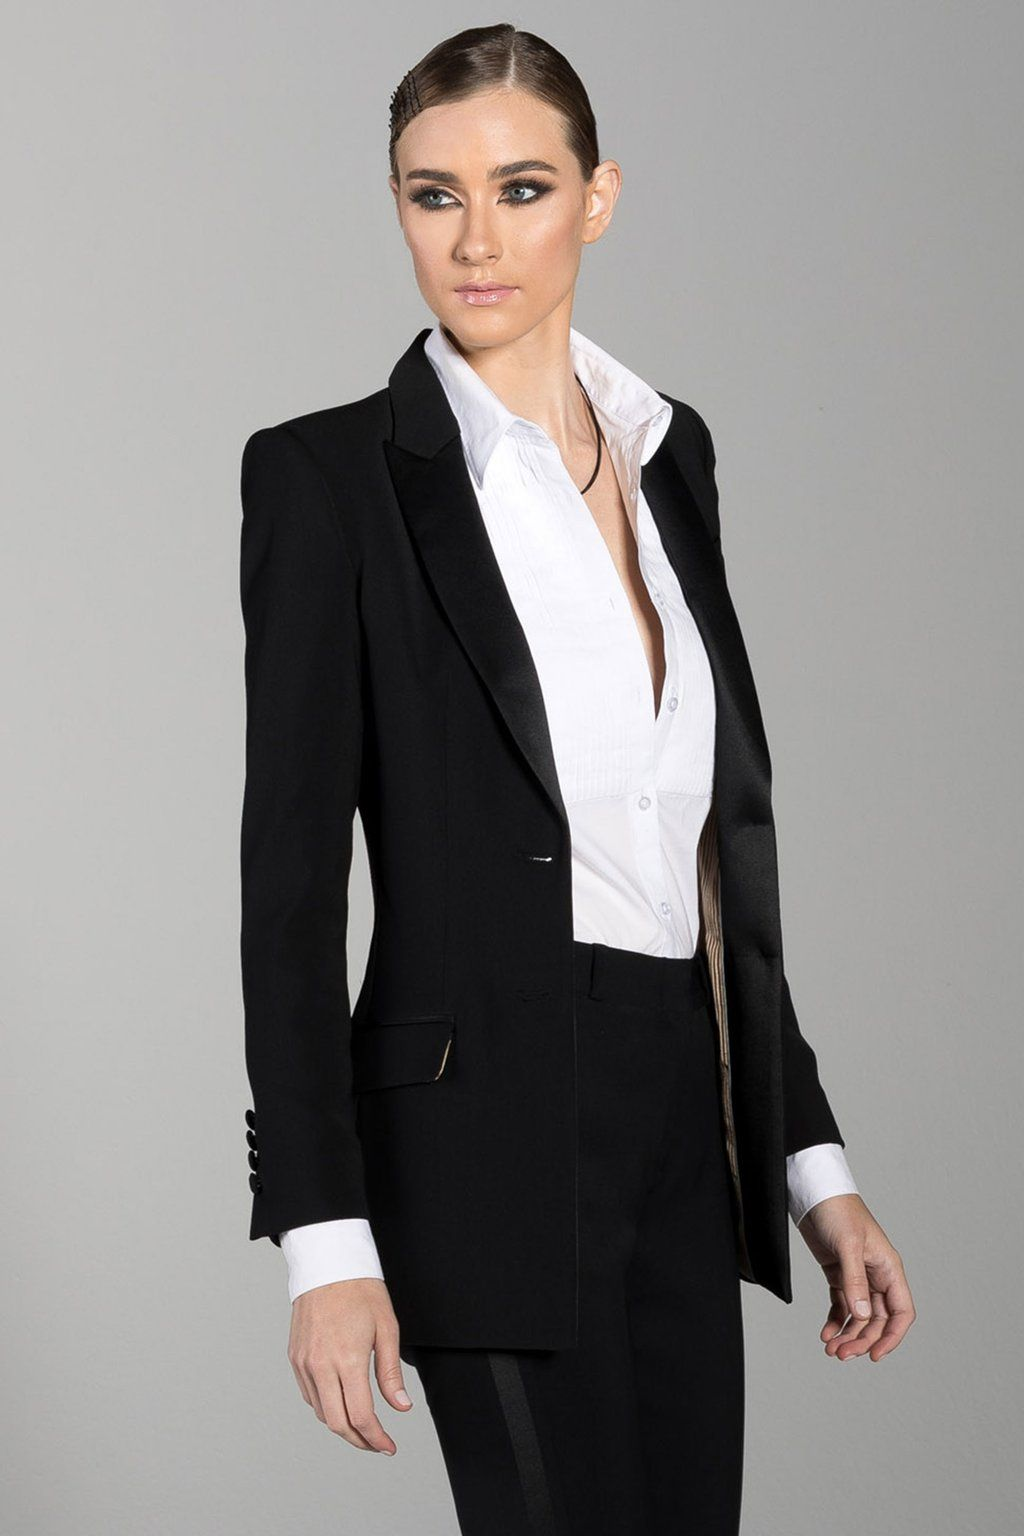 3244e7af991 Find your style with the women s Long Black Peak Lapel Tux Jacket. This  black woven tuxedo jacket features a longer length that makes it the  perfect fit for ...